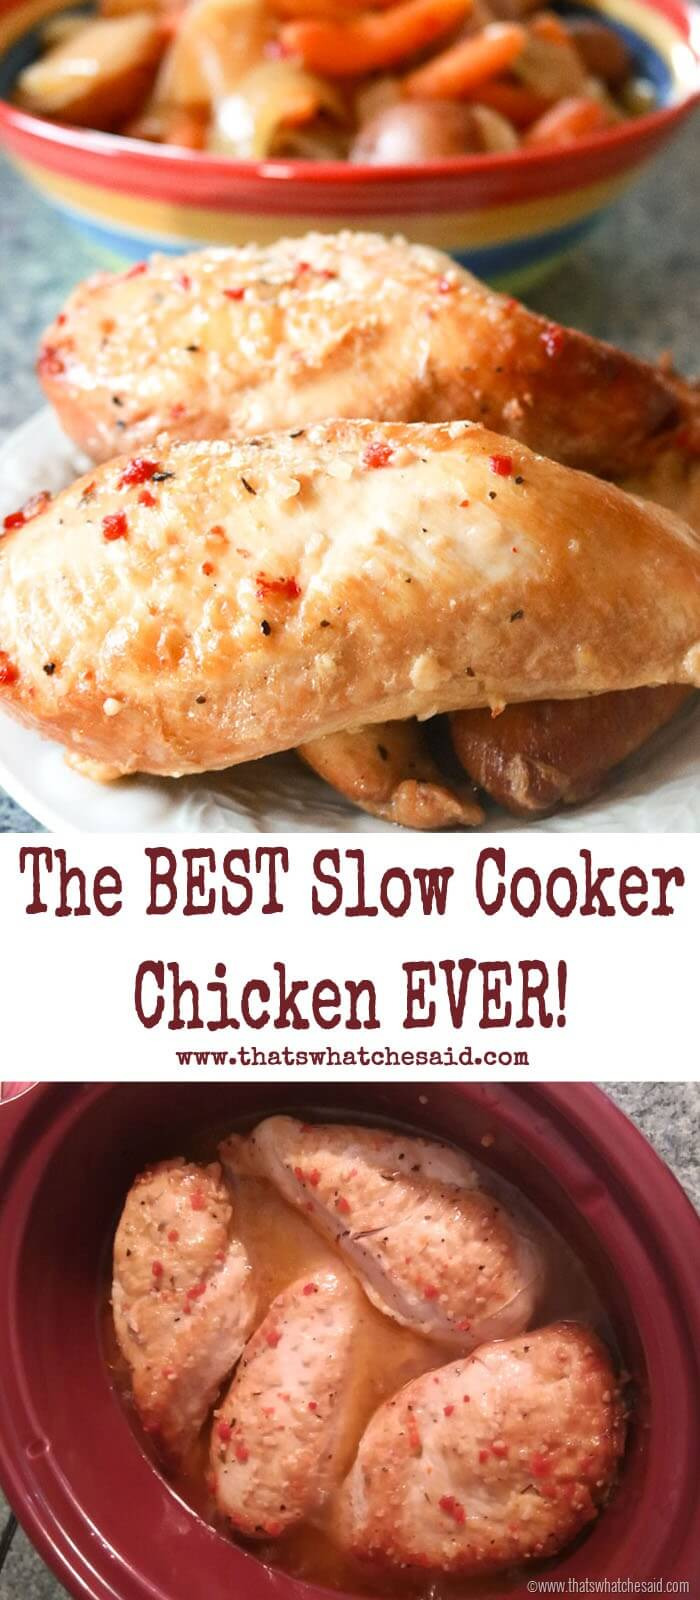 The Best Slow Cooker Chicken Ever - You NEED this in your life!